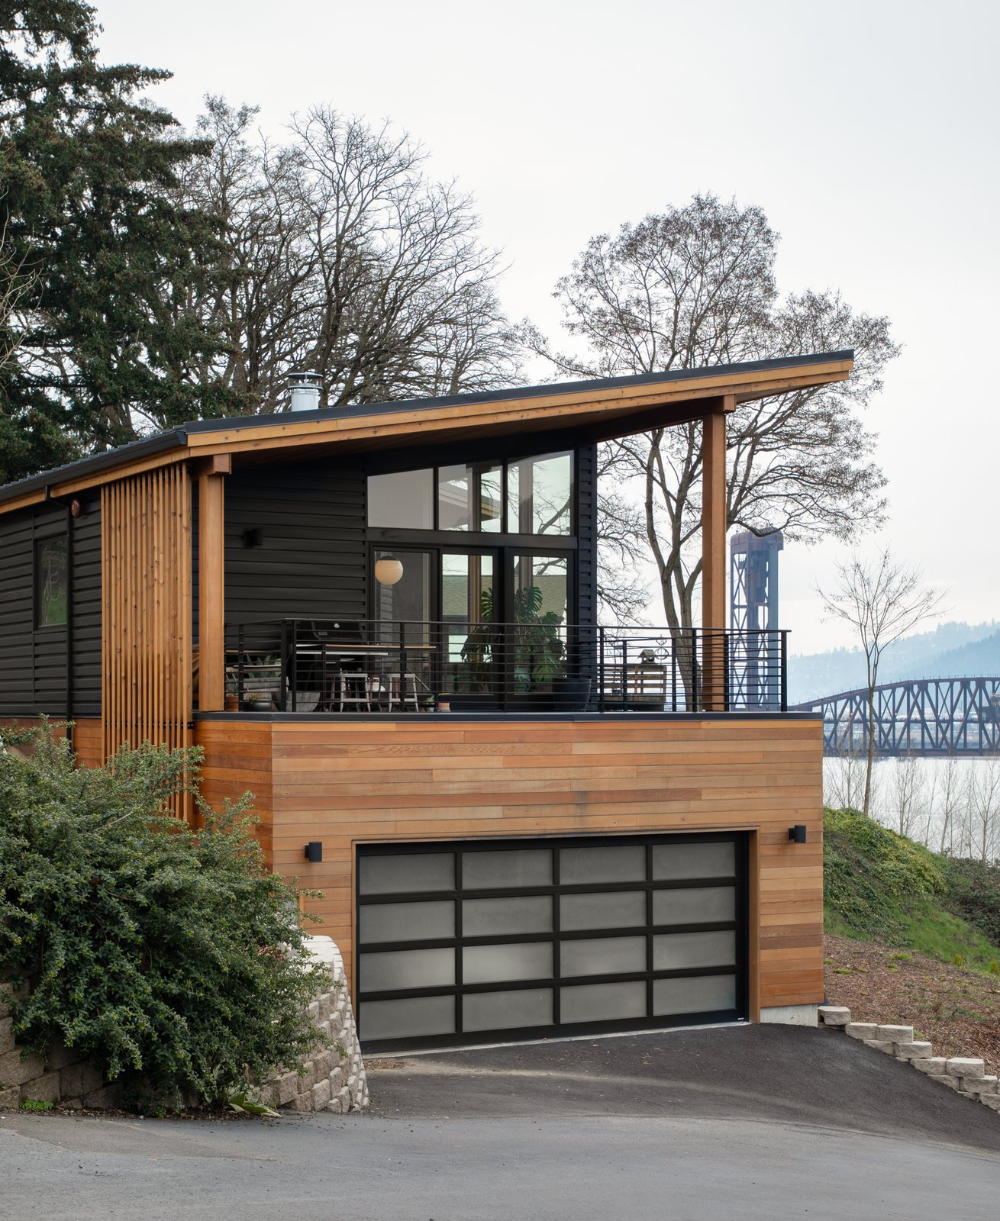 The Wriff Residence by Guggenheim Architecture + Design Studio